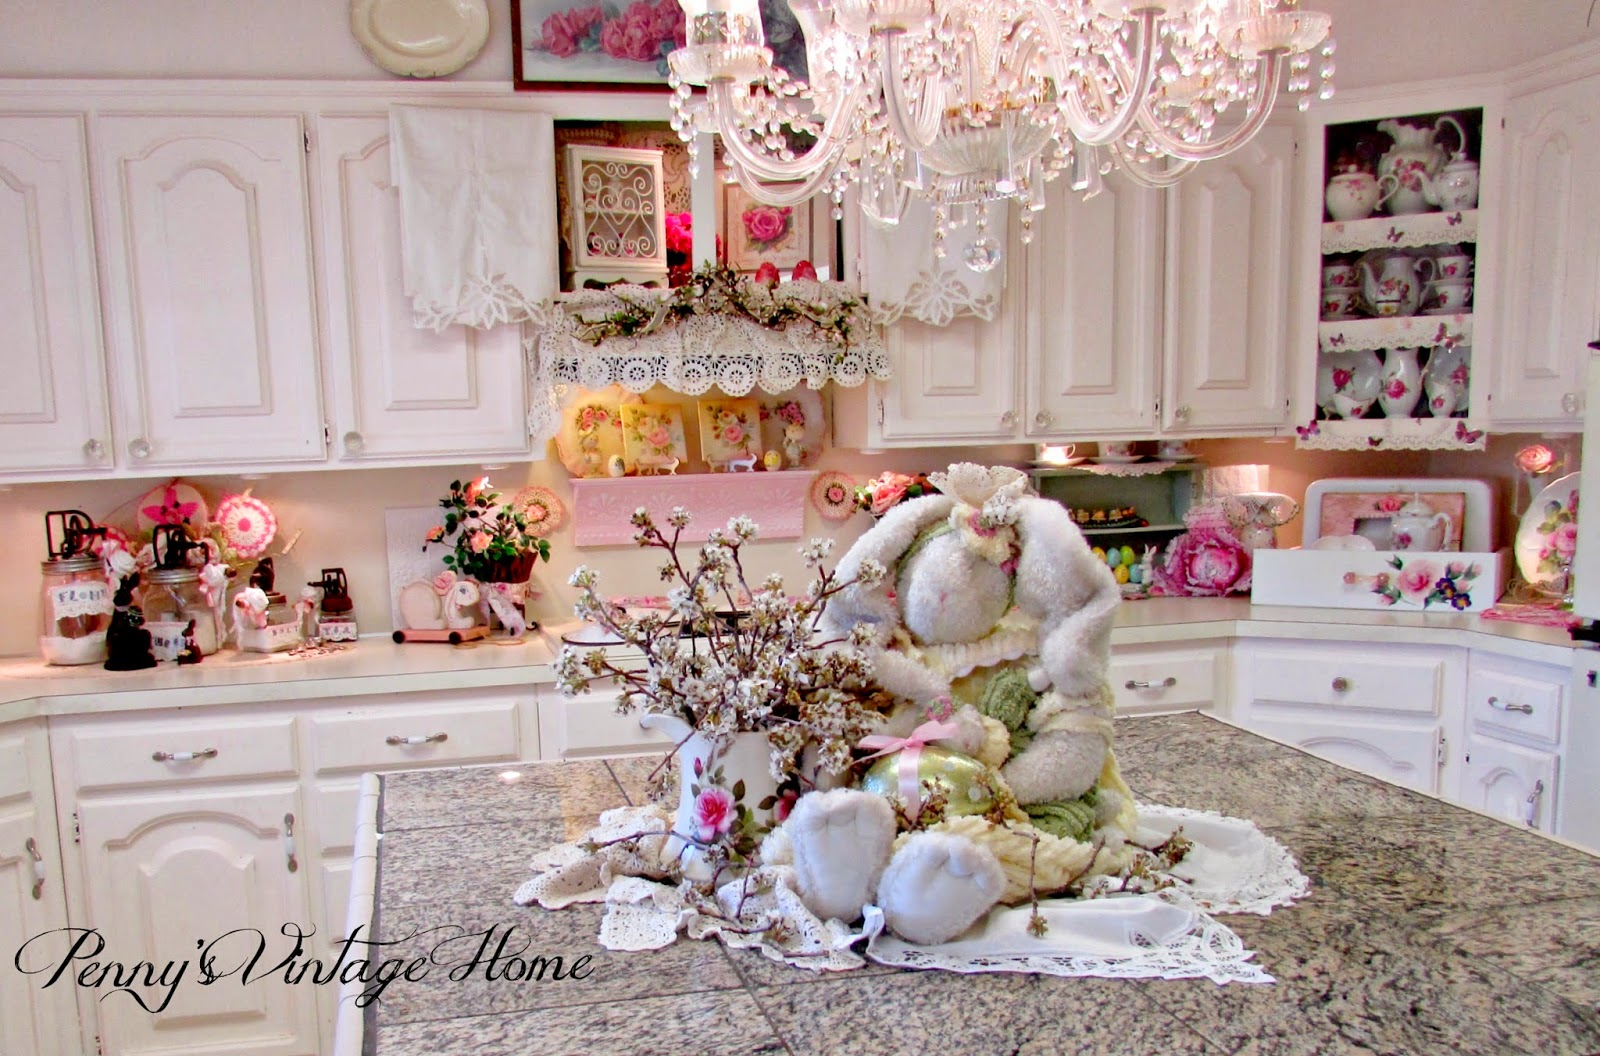 Penny\'s Vintage Home: Decorating for Easter in the Kitchen